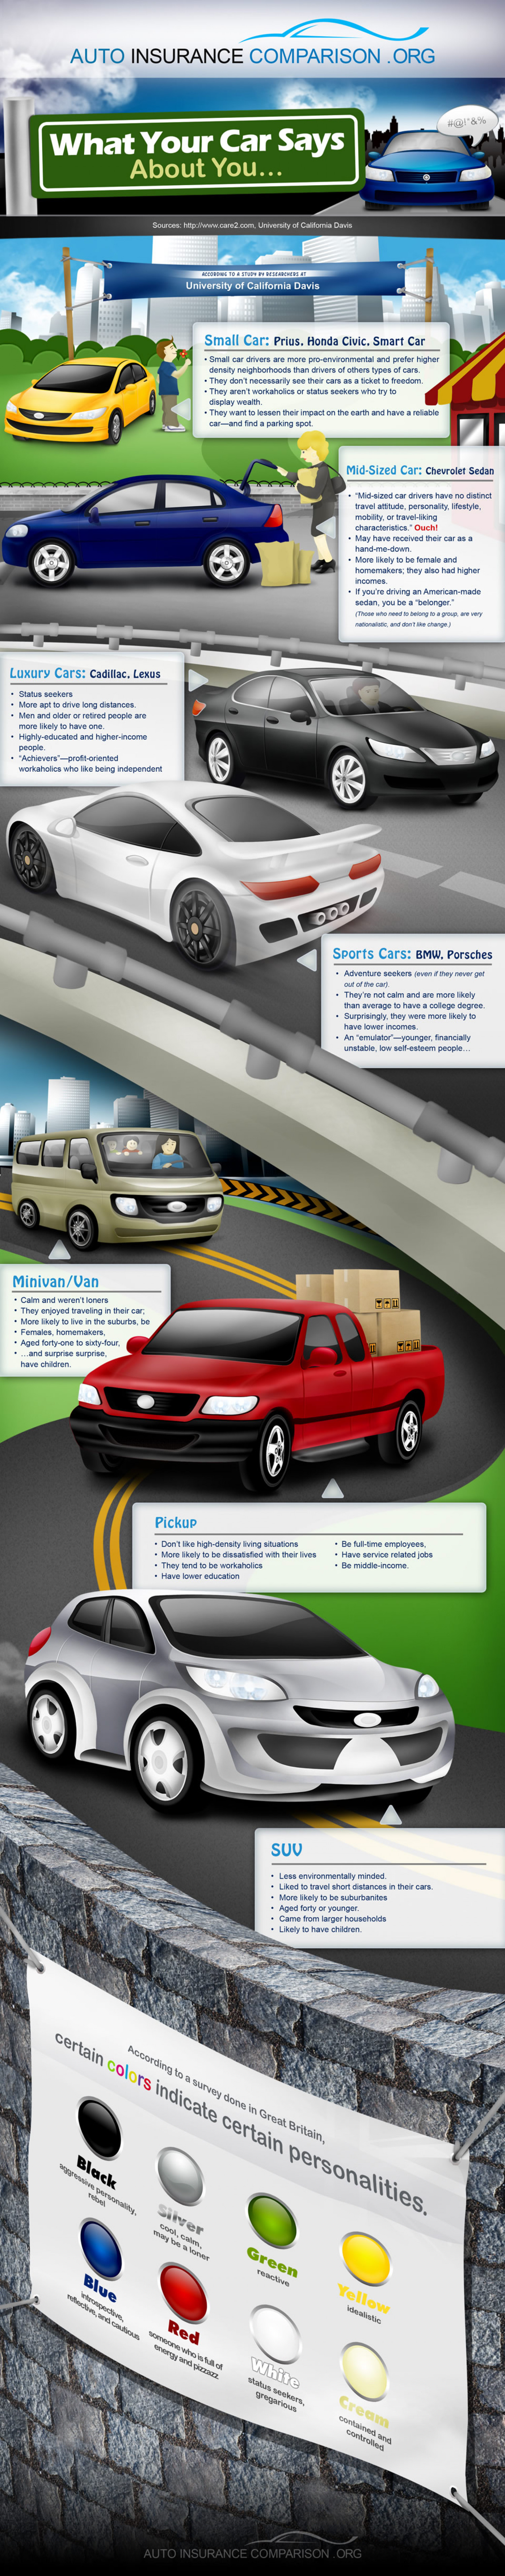 What Your Car Says About You Infographic